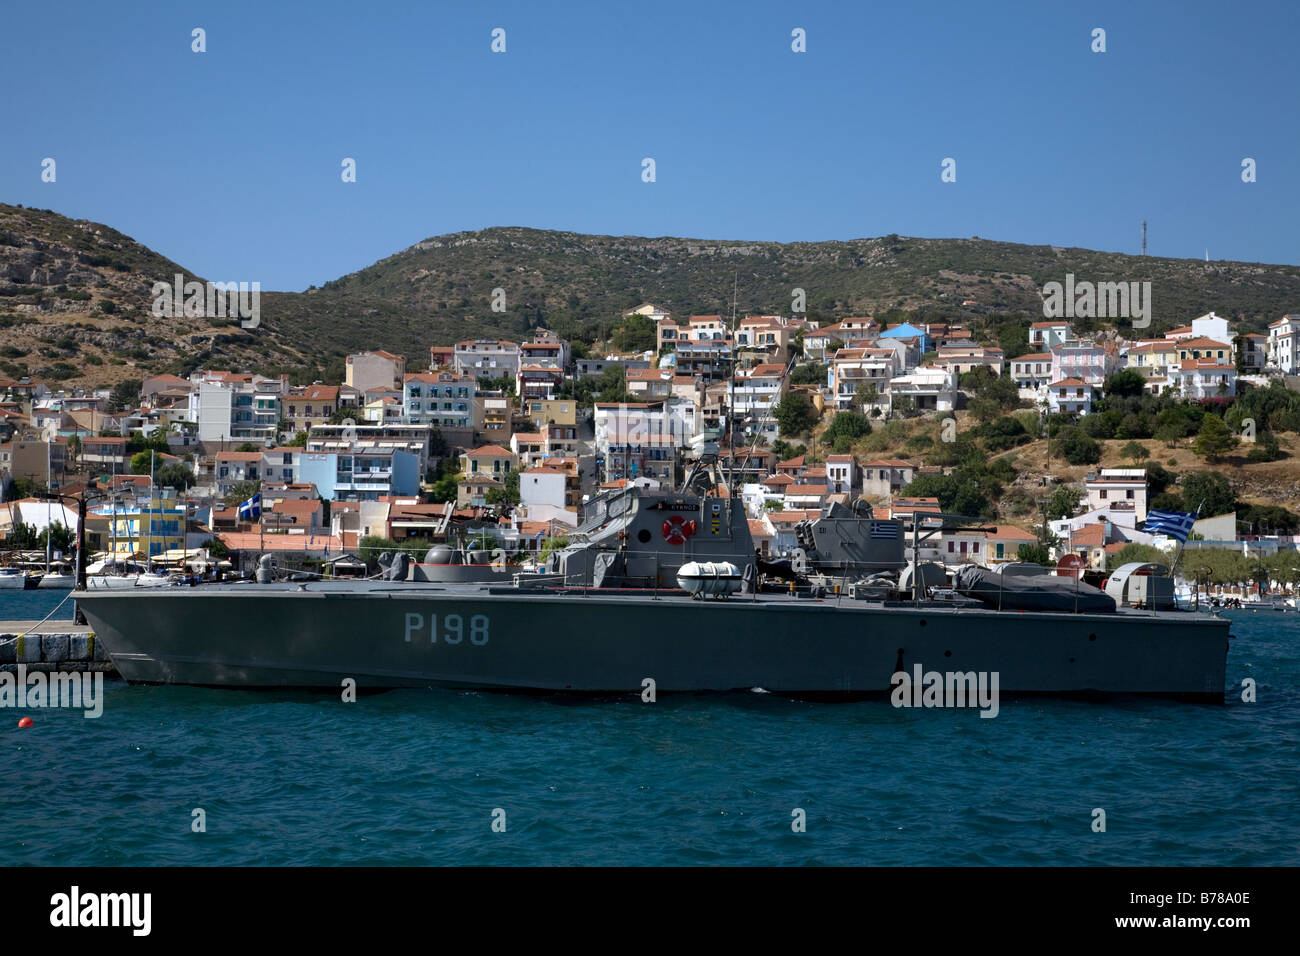 Hellenic Navy Tjeld class patrol boat Kyknos P 198 in harbour Pythagorion Samos Greece Stock Photo